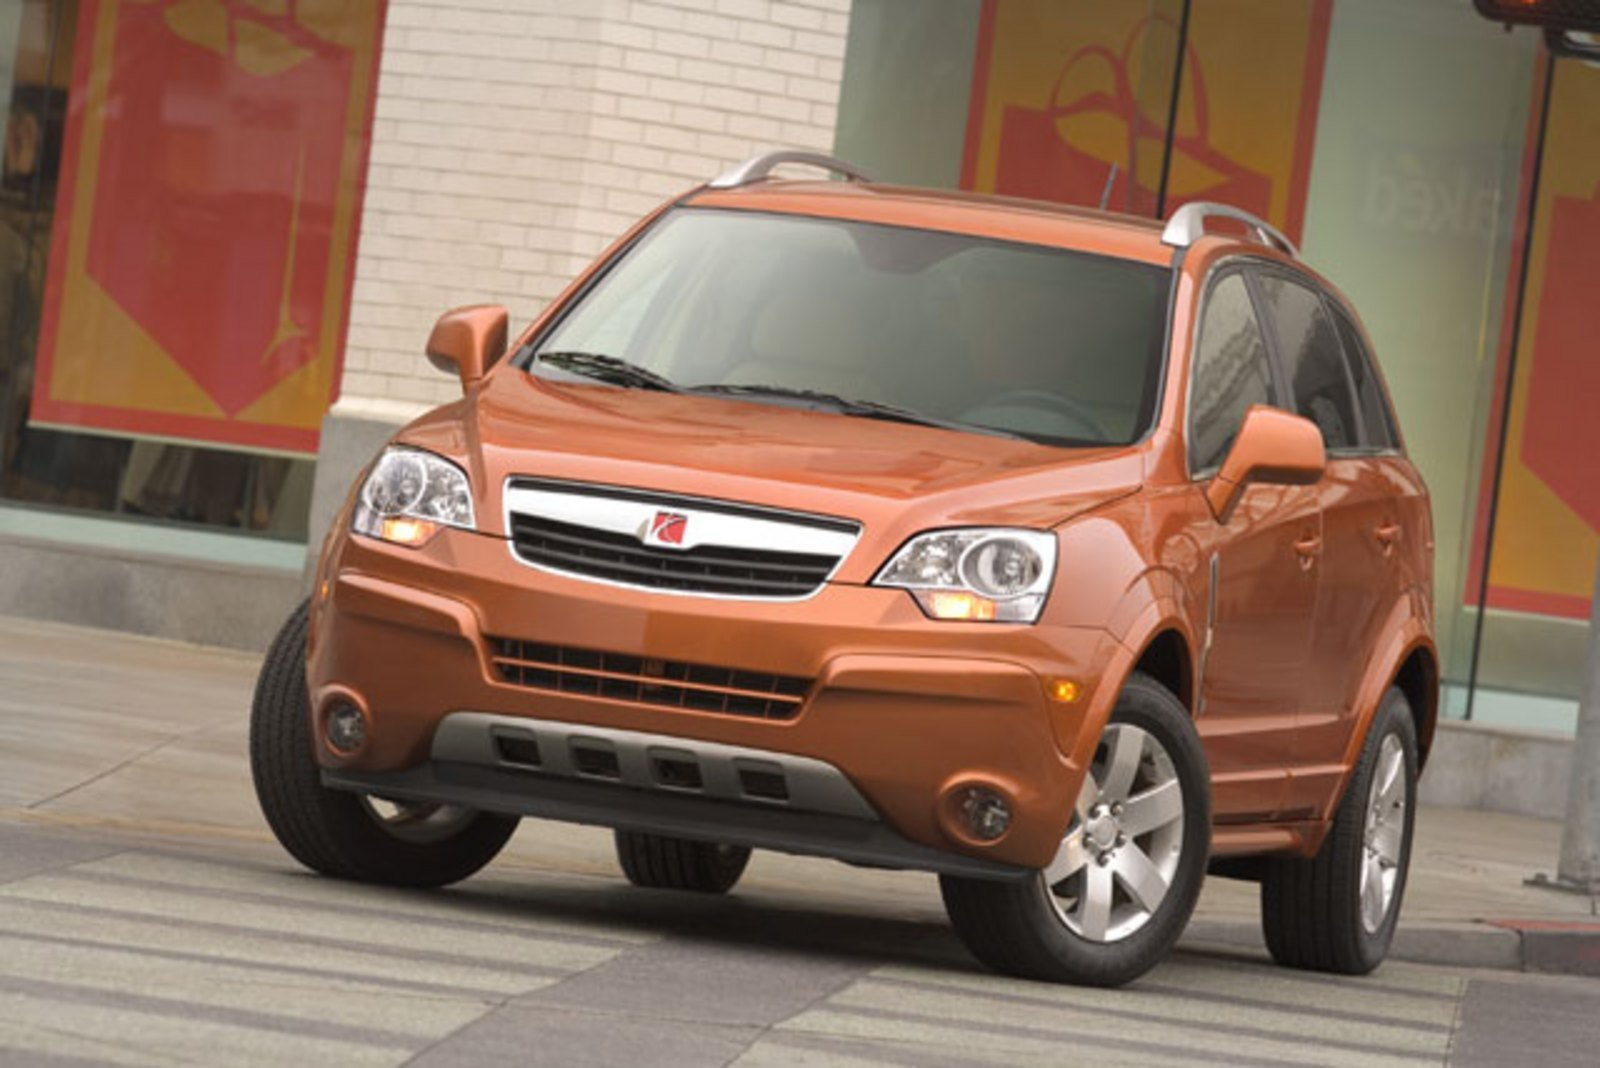 2008 Saturn Vue Xe >> 2008 Saturn Vue Coming With Two Hybrid Powertrains News ...